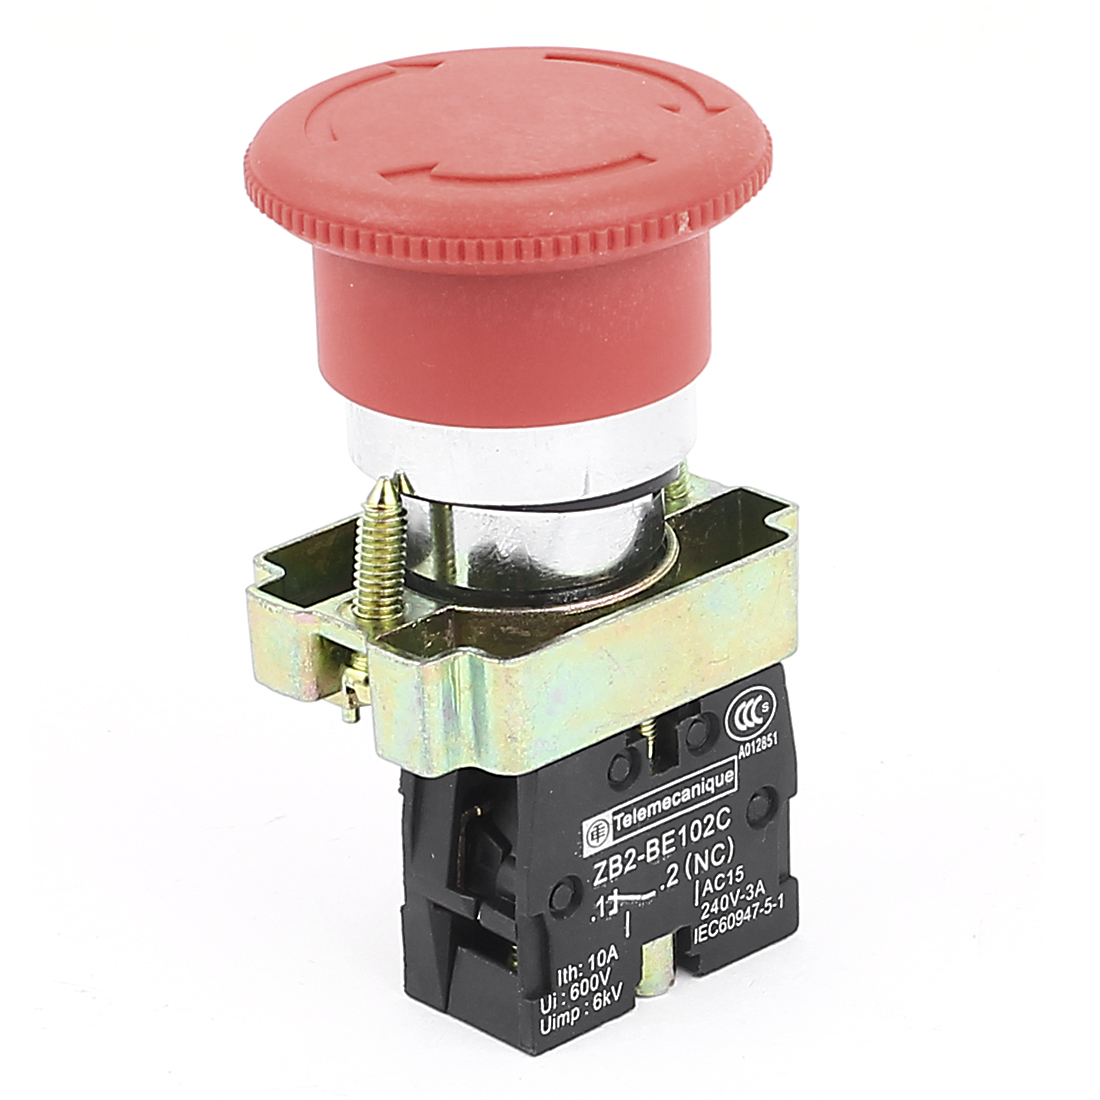 AC 600V 10A SPST Latching Panel Mounting Red Sign Mushroom Cap Emergency Stop Push Button Switch